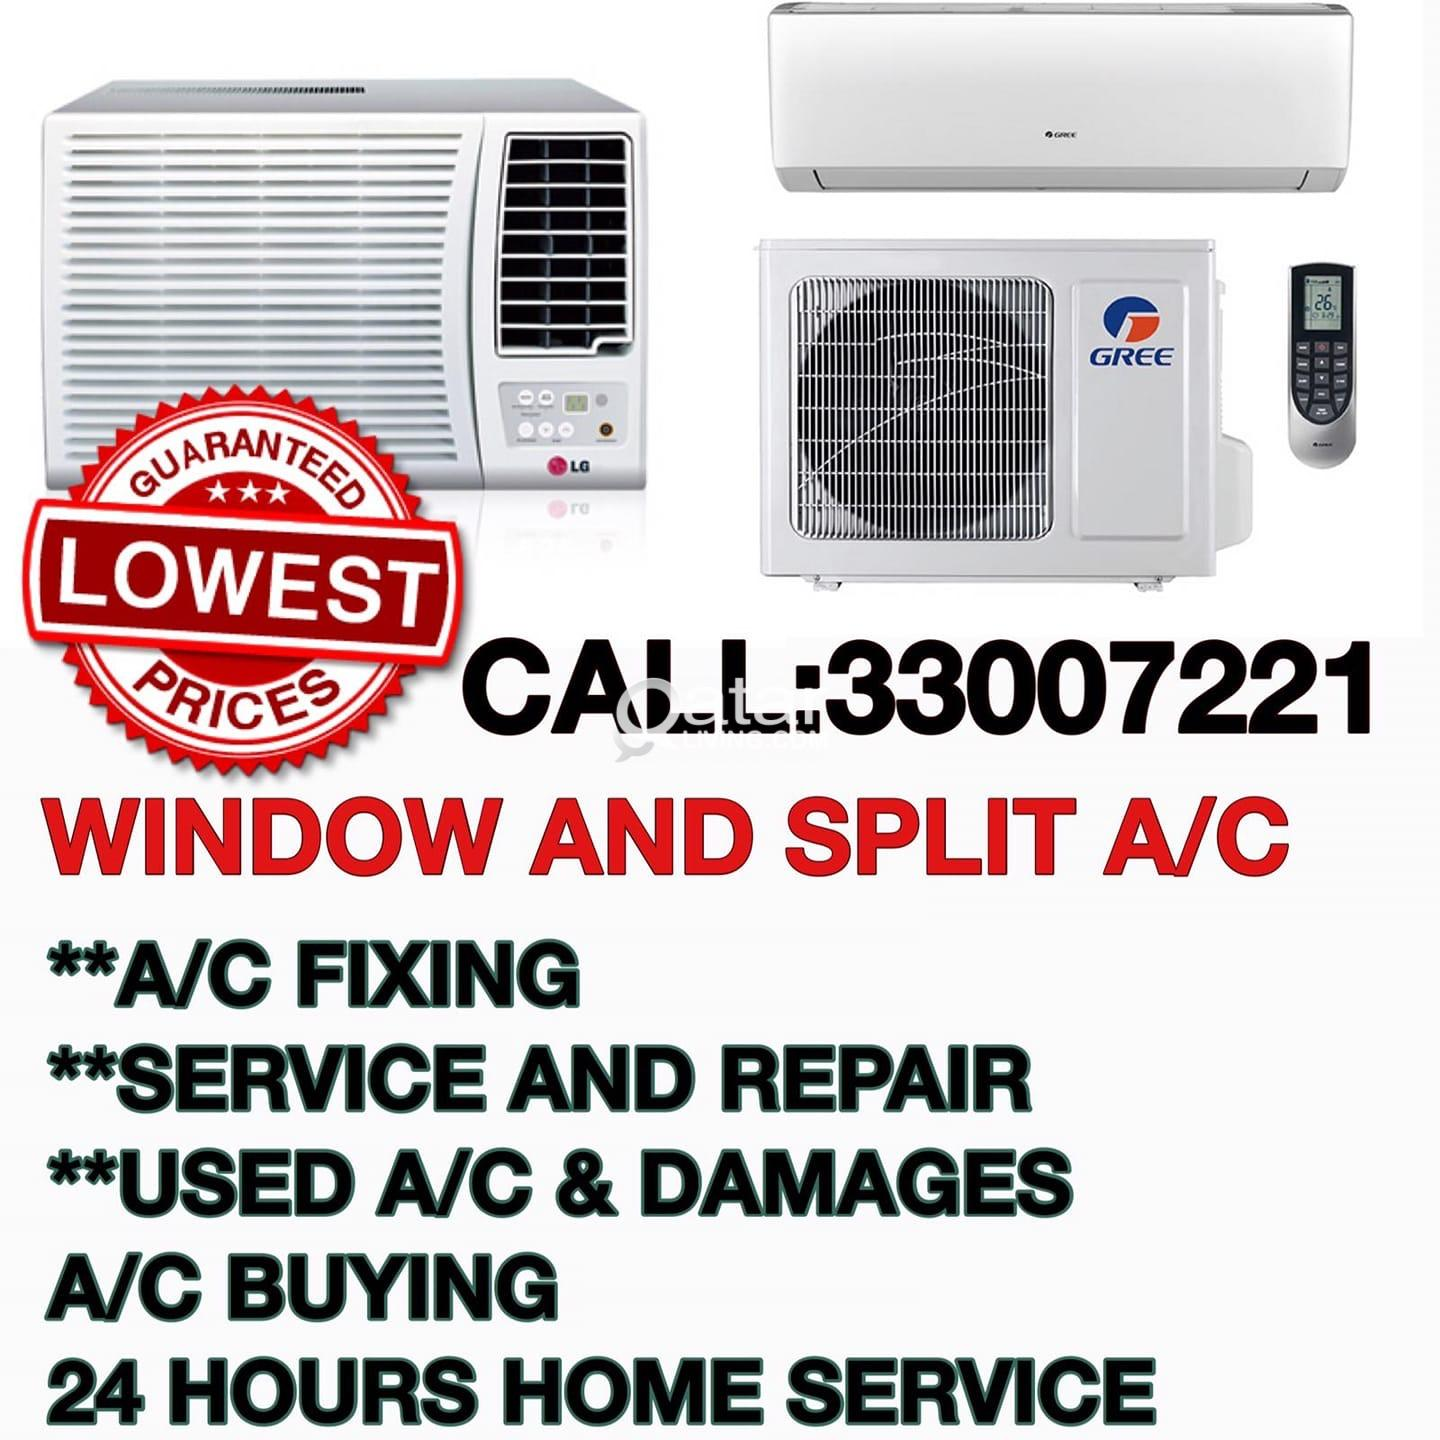 We buy and sell used ac also repair/servicing for all type